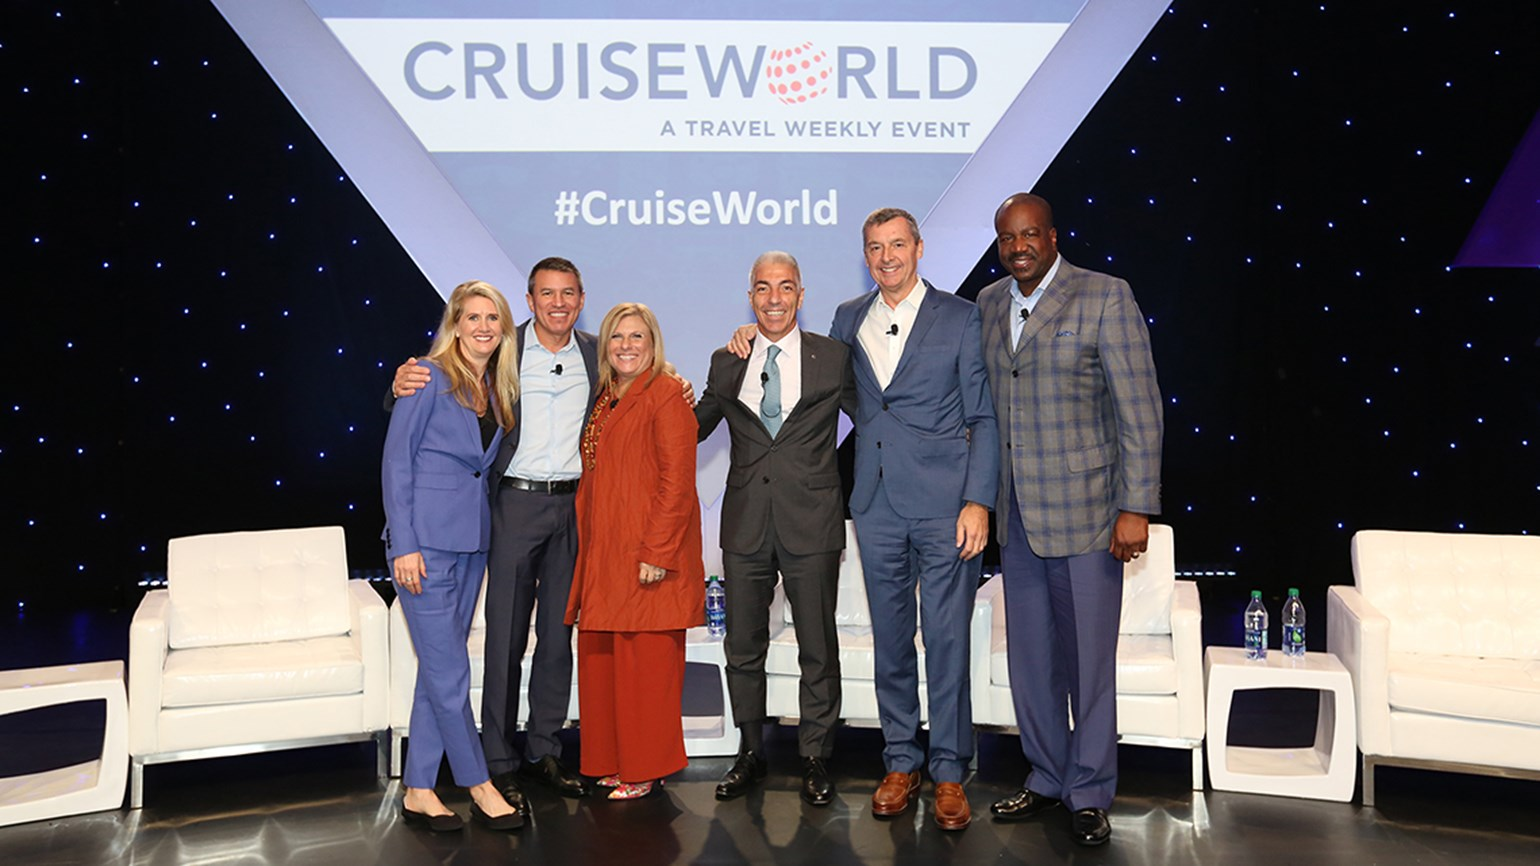 Cruise line presidents: Agents' role is critical